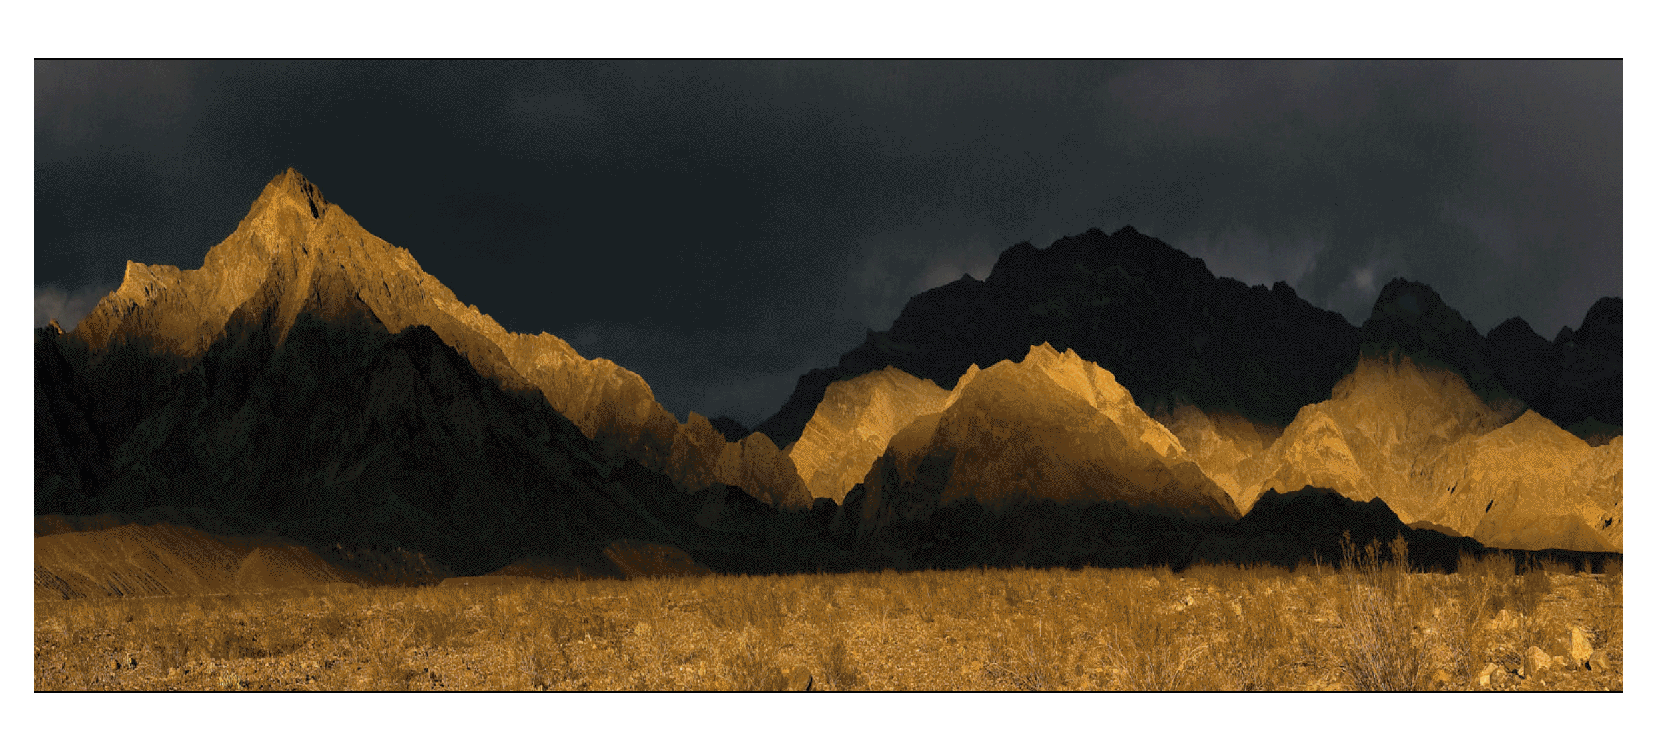 photo-funeralmtns-panoramic-noborders-cc2.png